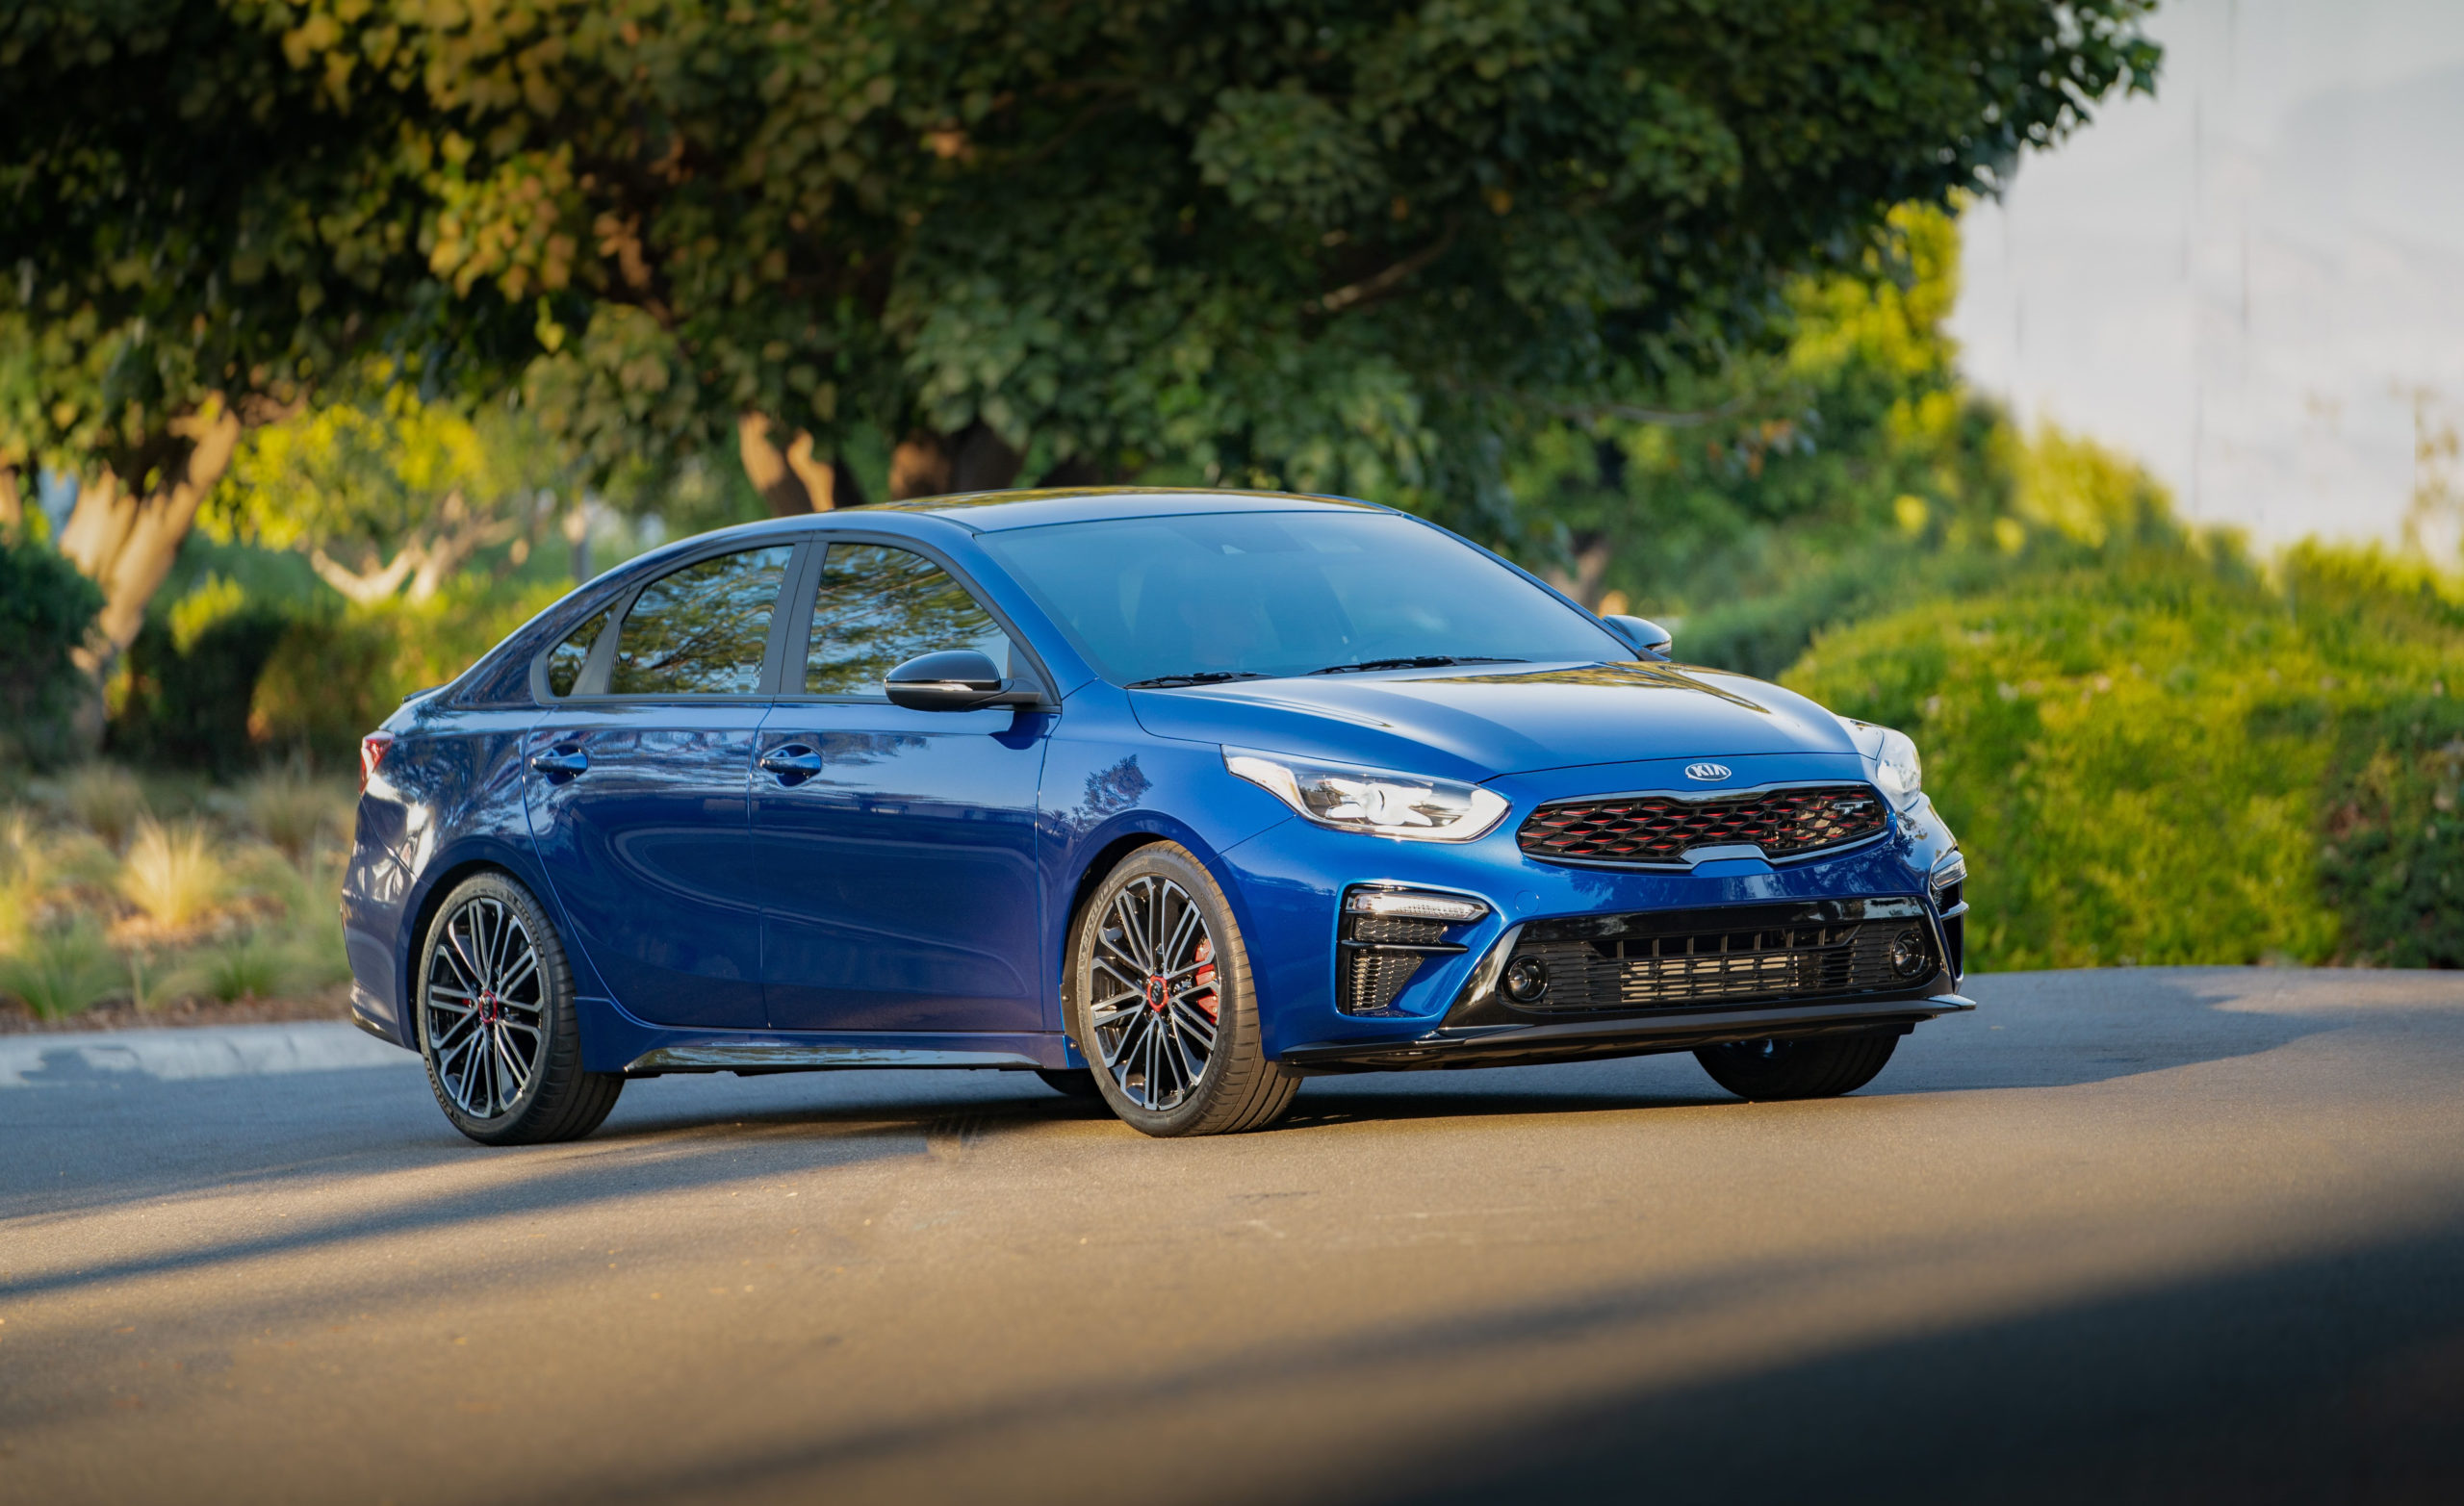 2020 Kia Forte Gt Gets 201 Turbocharged Horsepower For Under - 2022 Kia Forte Gt Specification, Changes